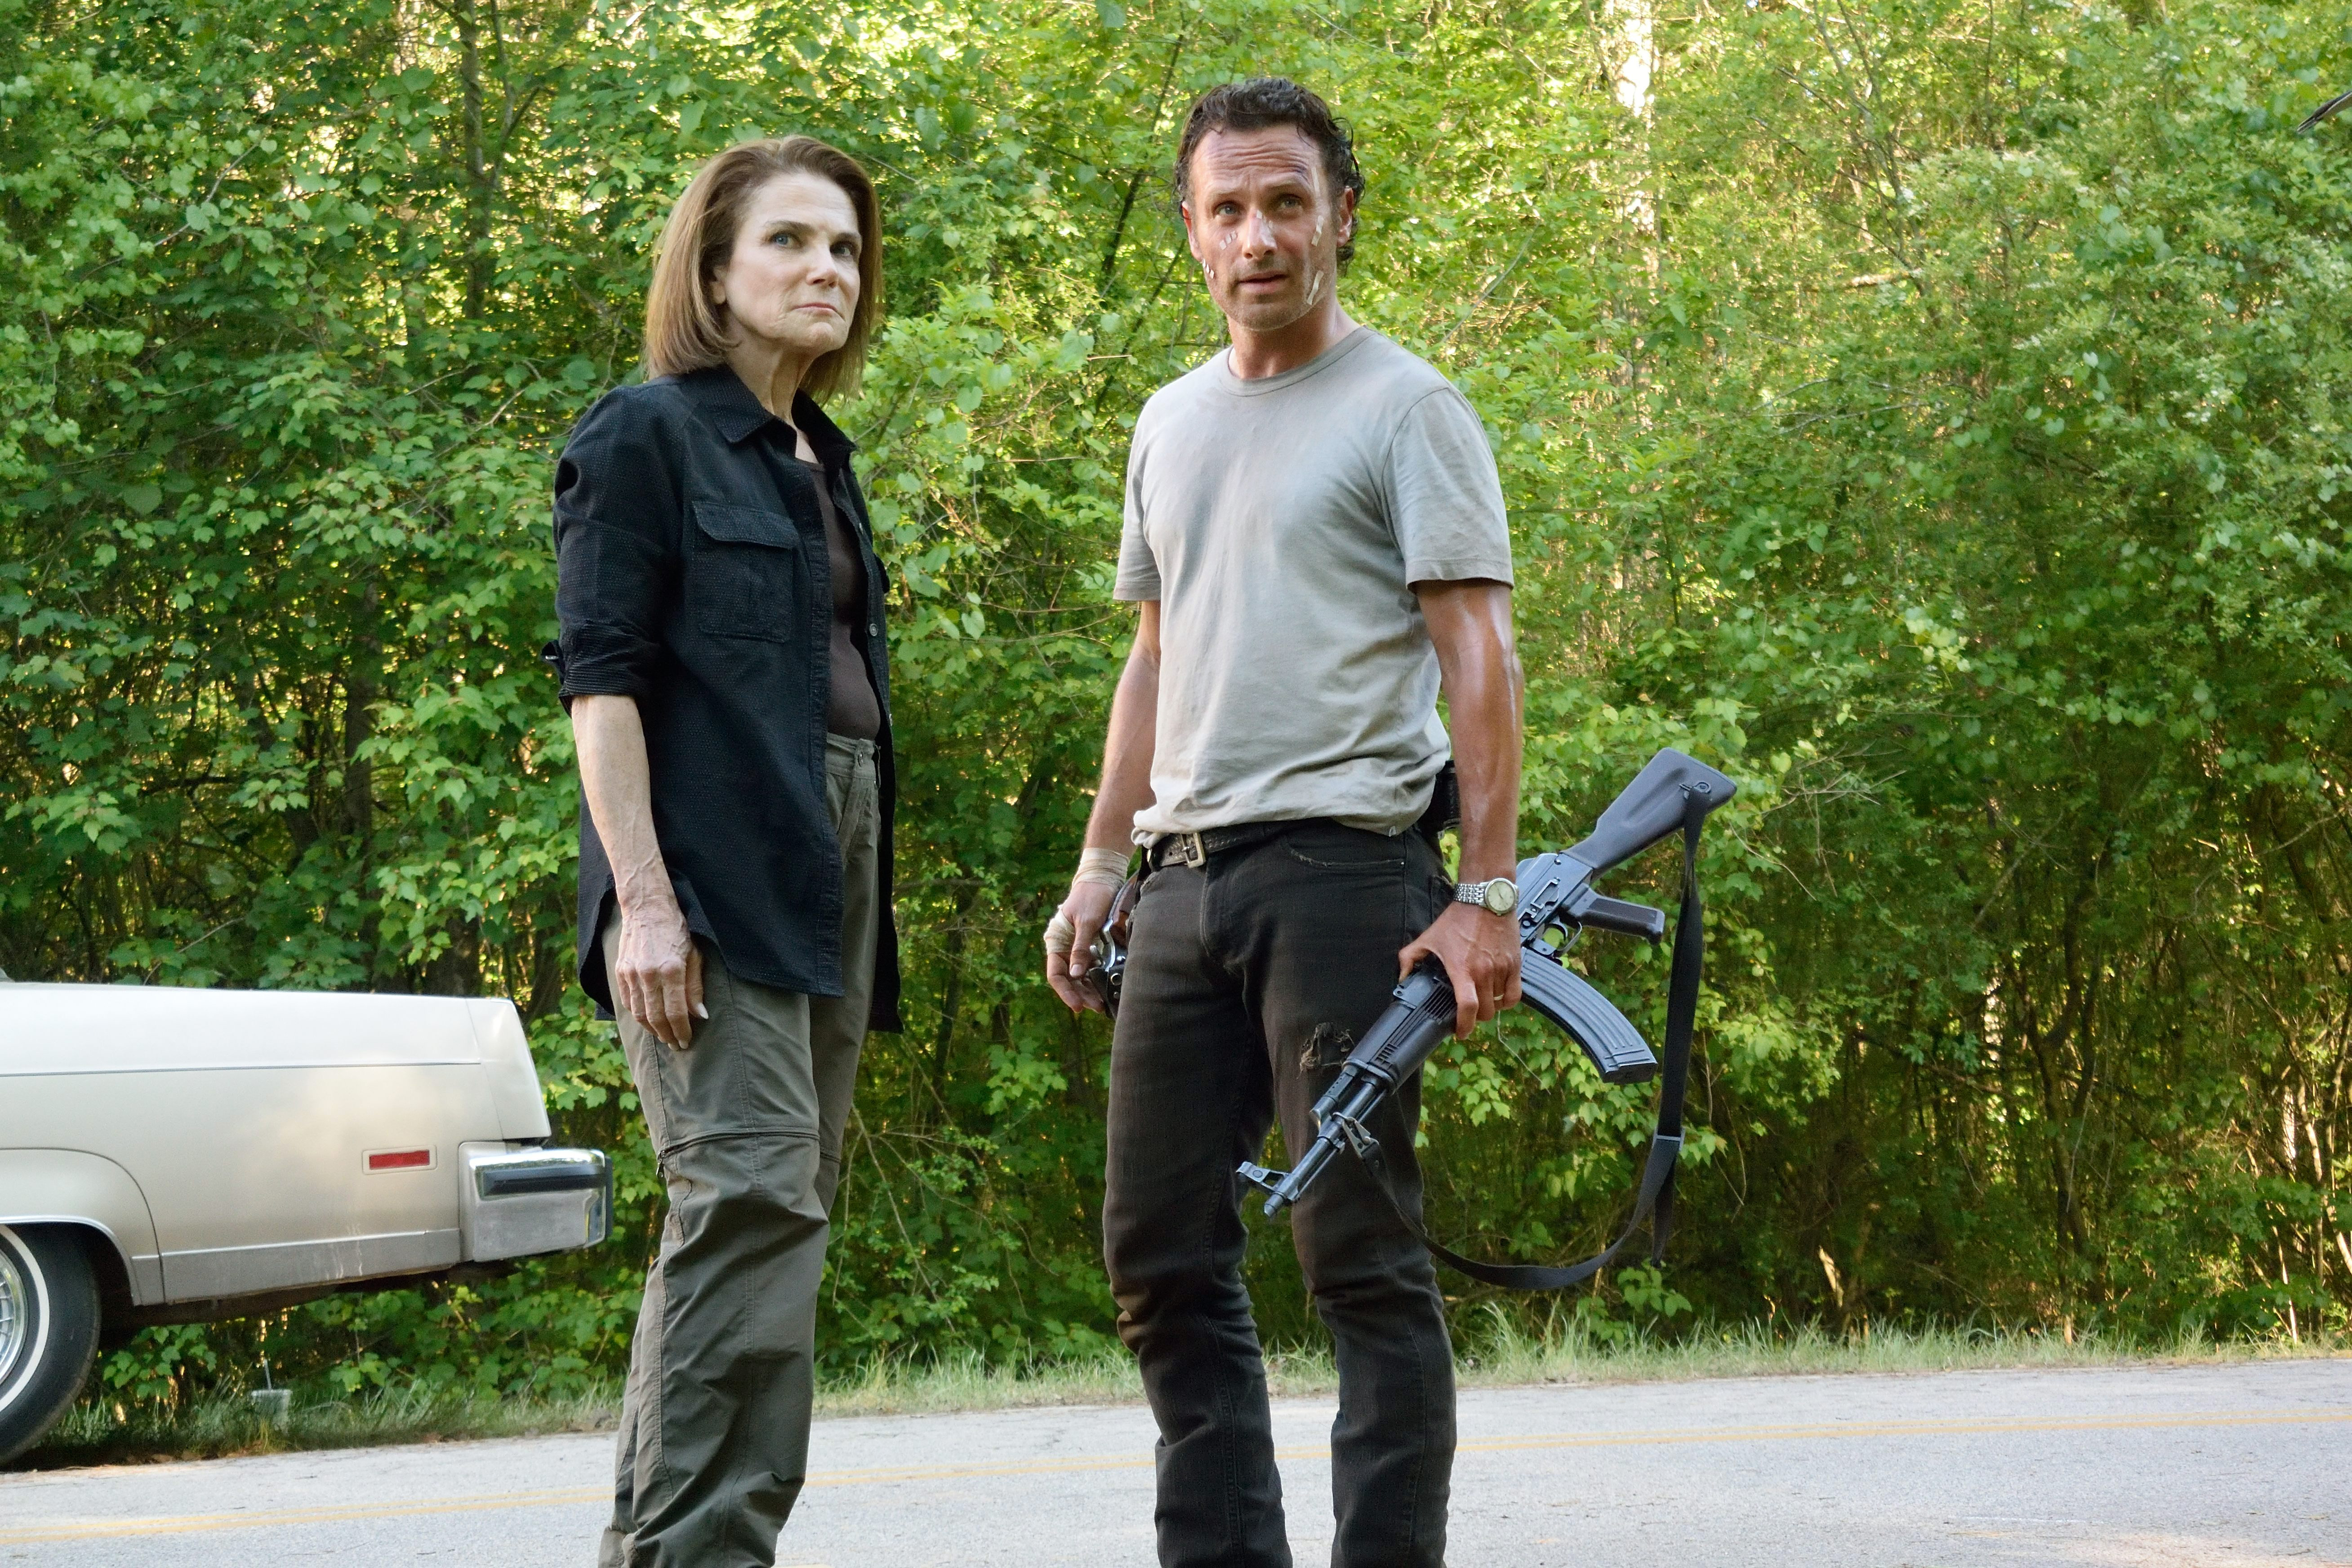 Tovah Feldshuh as Deanna Monroe and Andrew Lincoln as Rick Grimes - The Walking Dead